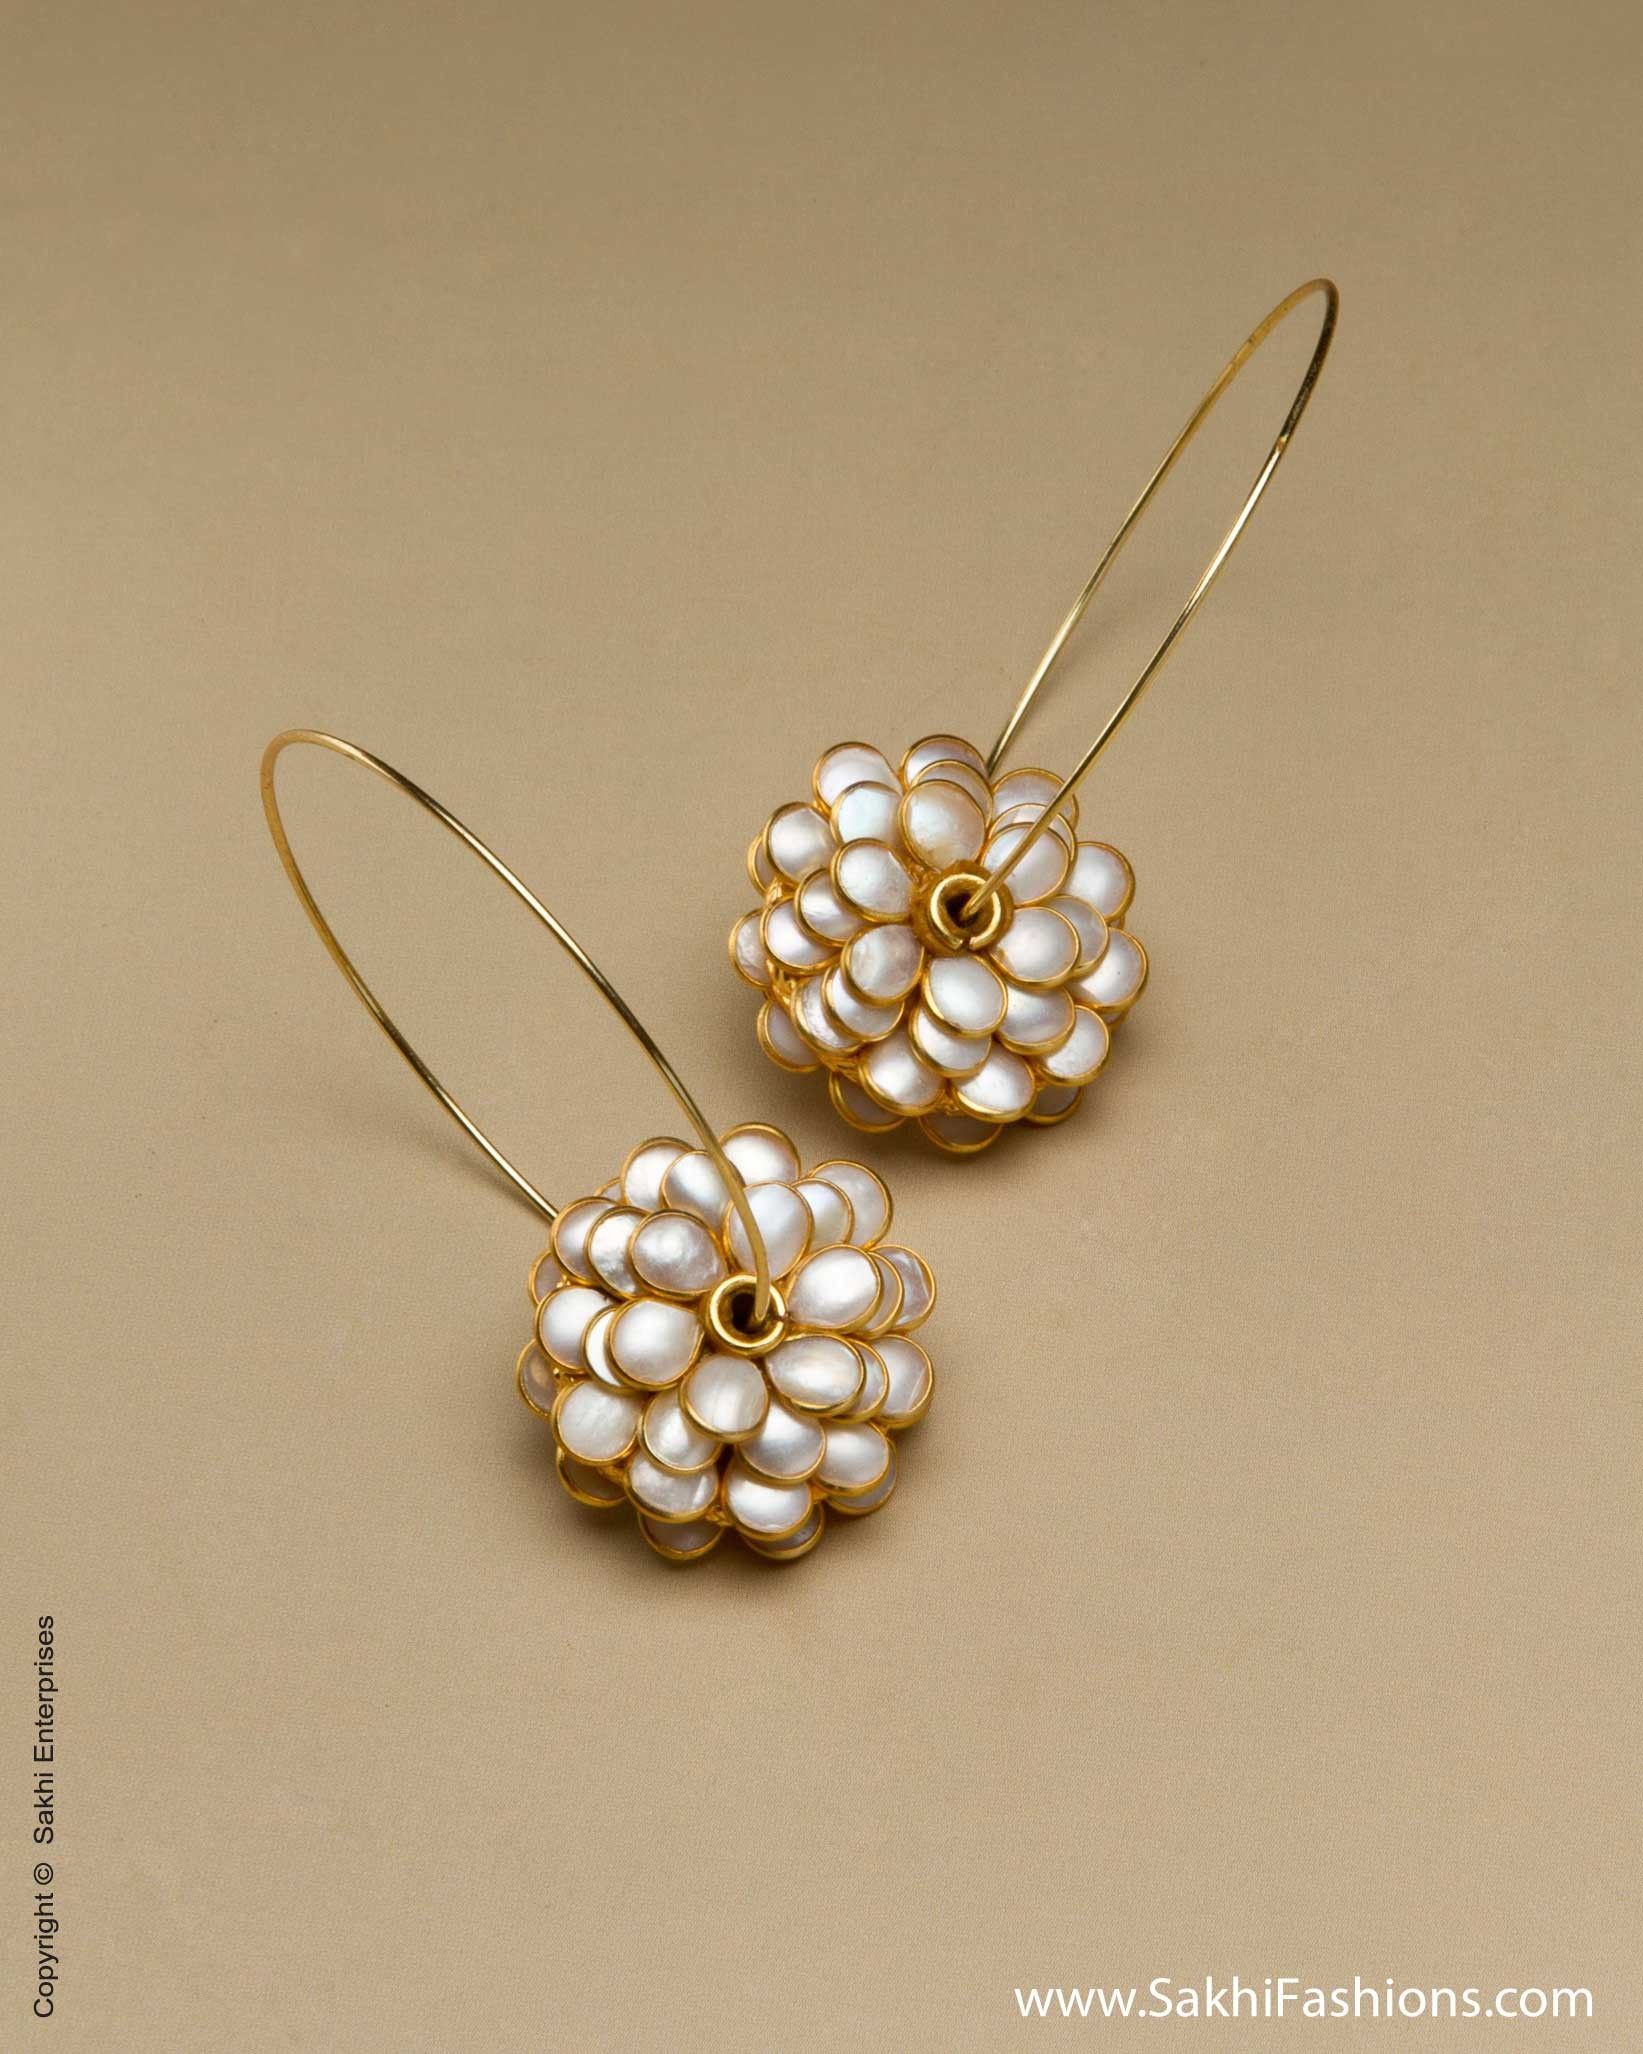 Jewelry & Accessories Motivated Elegant Gold Color Flower Simulated Pearl Earrings Trendy Bridal Earring Jewelry Beautiful In Colour Stud Earrings